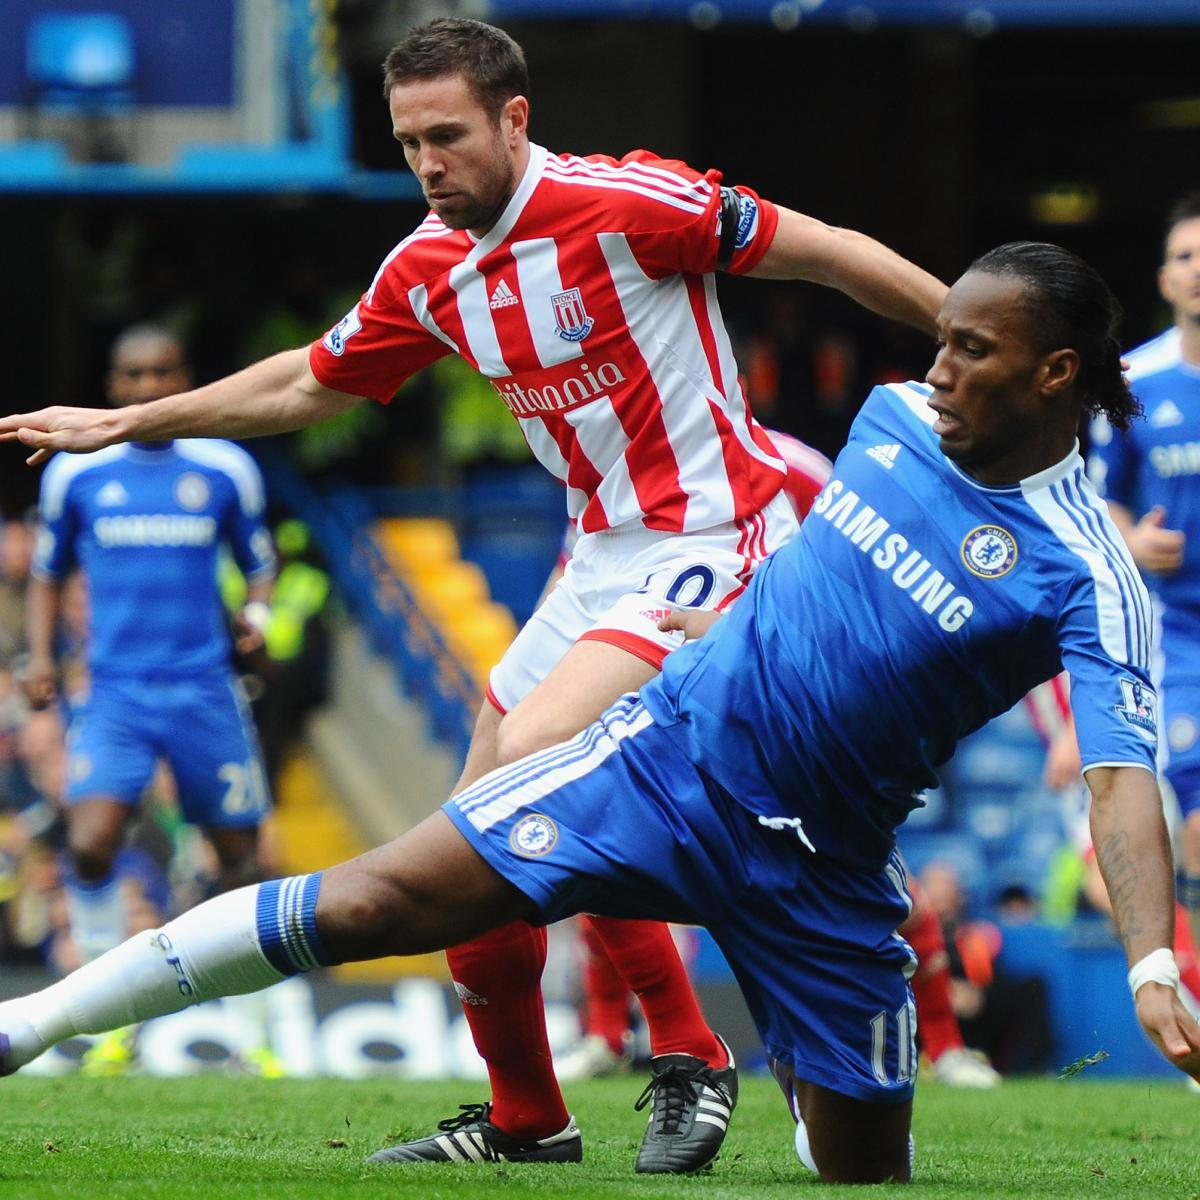 Chelsea Fc Latest News: Chelsea FC Vs. Stoke City FC: Odds, Preview And Prediction